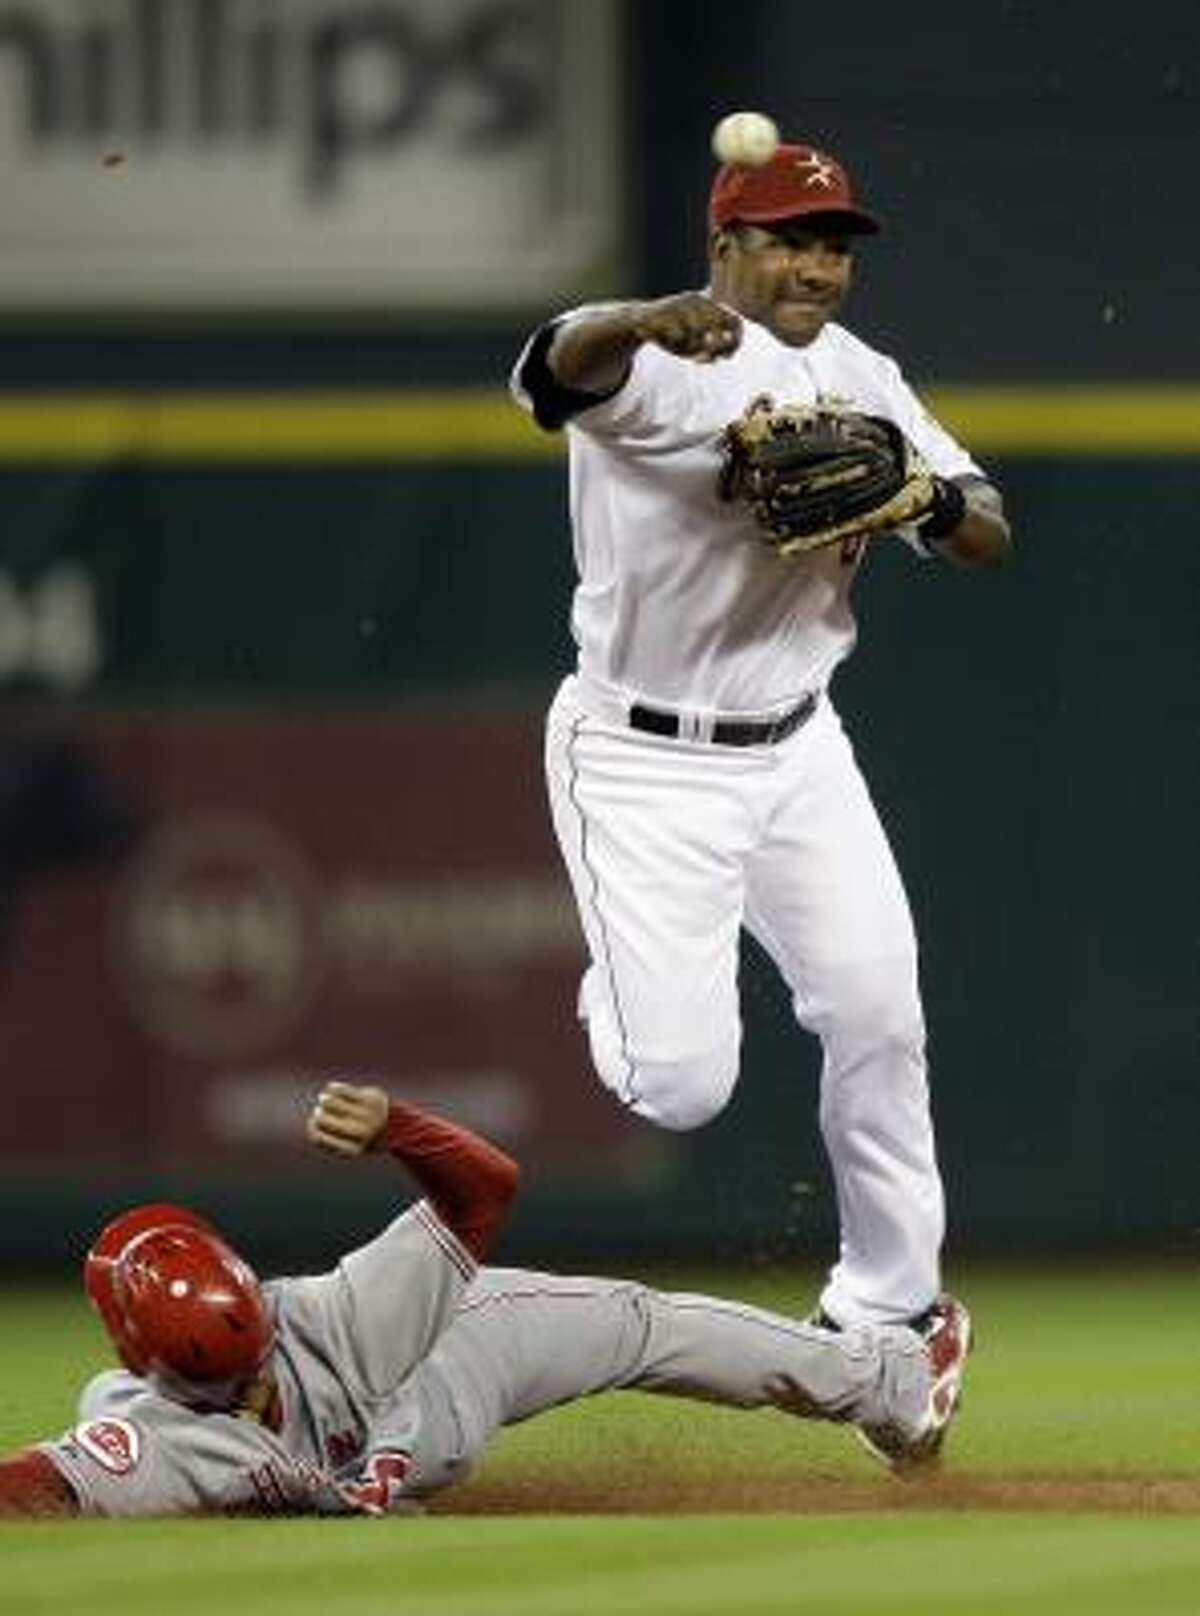 Astros shortstop Miguel Tejada throws to first base to complete a double play as Cincinnati Reds outfielder Jerry Hariston Jr. slides into second base during the first inning. Hariston Jr. was out at second and Joey Votto was out at first on the double play.